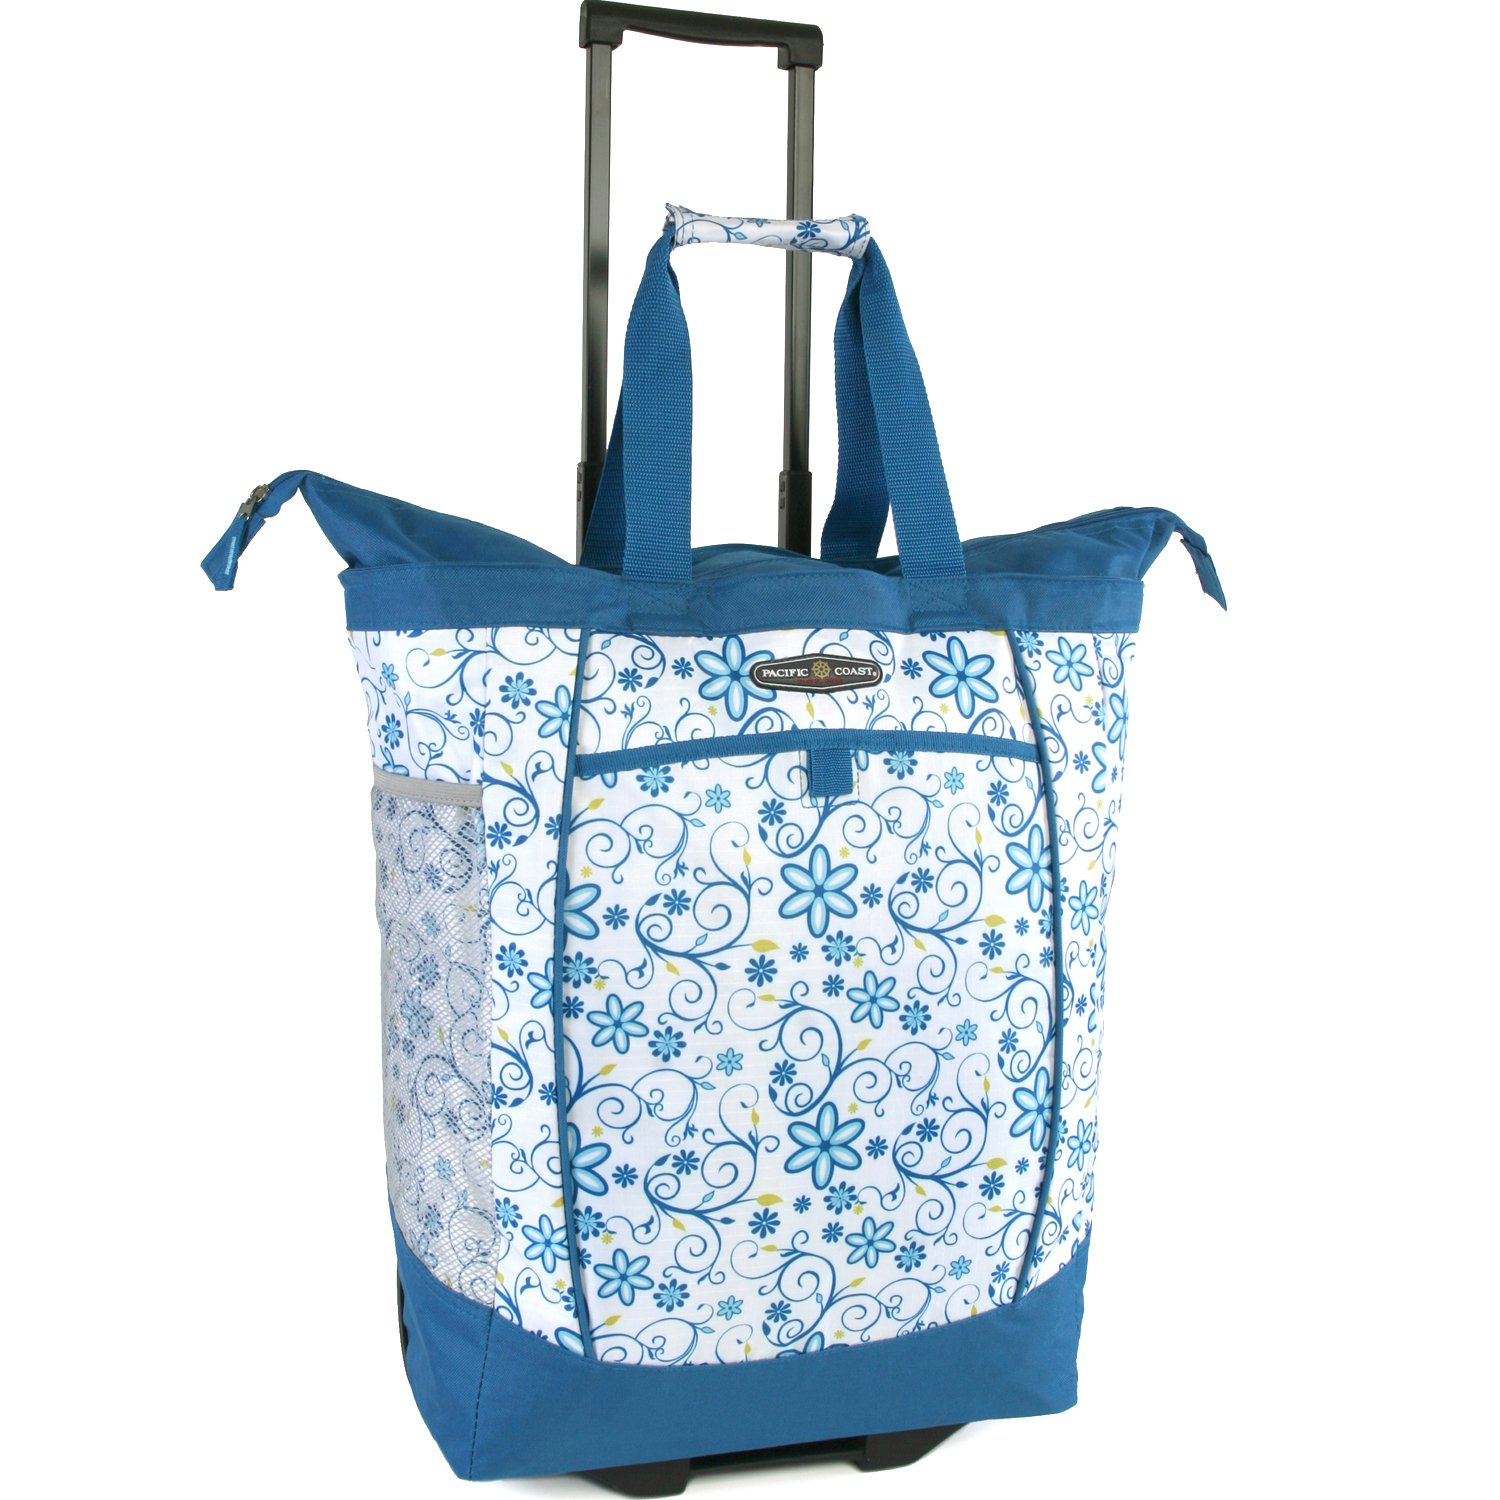 Pacific Coast Signature Large Rolling Shopper Bag Travel Totes, Blue Daisy WST-105-BLD